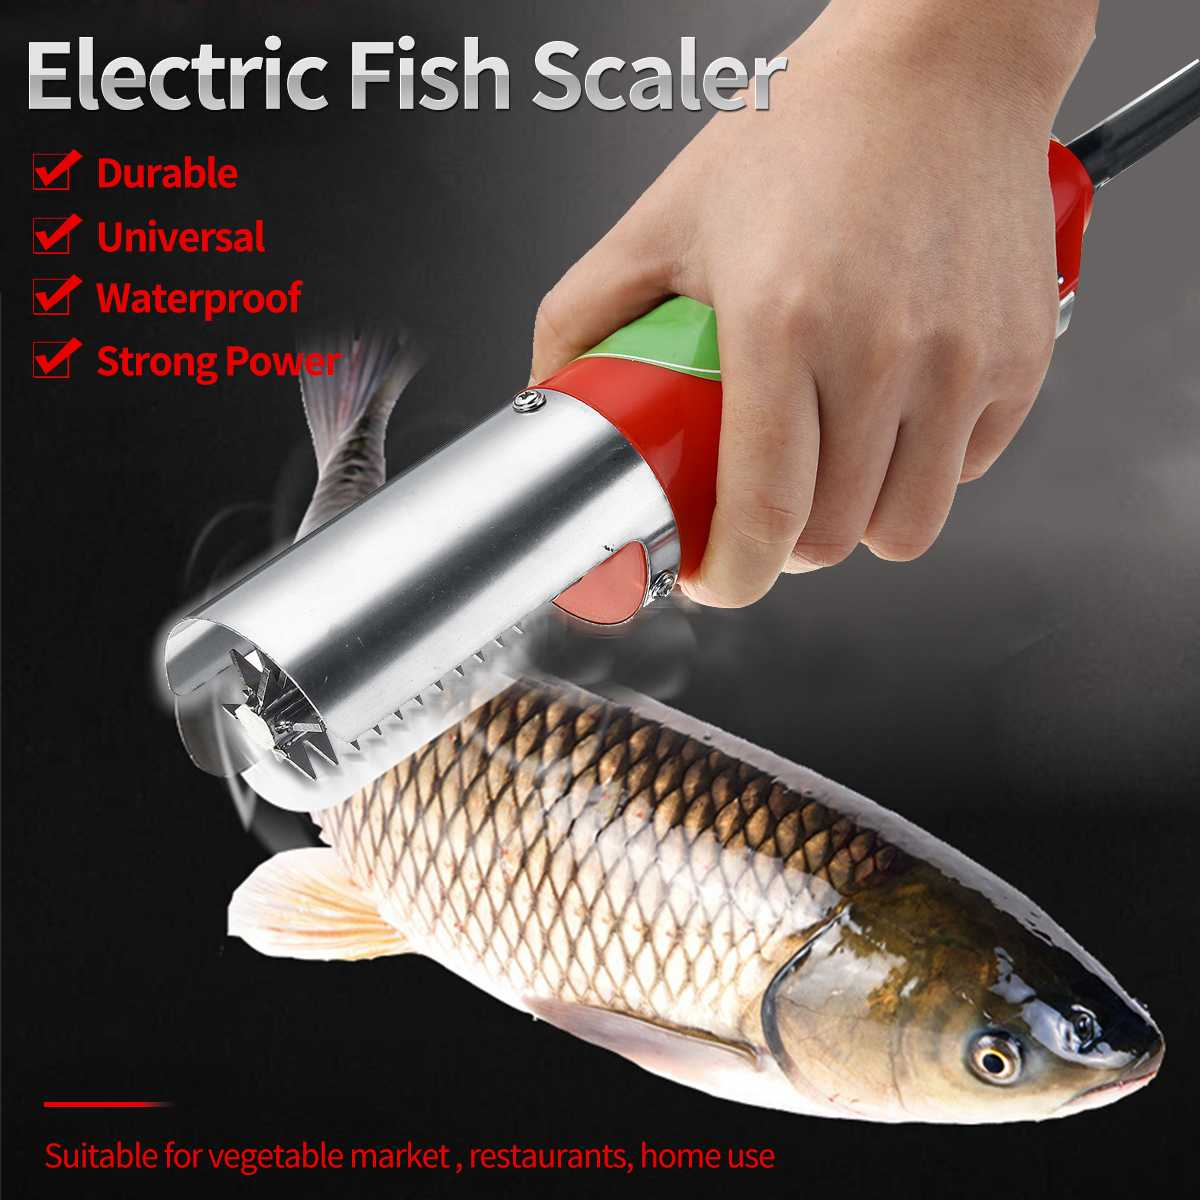 110V-220V Electric Fish Scale Scraper Fishing Scalers Clean Easy Fish Stripper Remover Cleaner Descaler Waterproof Tool110V-220V Electric Fish Scale Scraper Fishing Scalers Clean Easy Fish Stripper Remover Cleaner Descaler Waterproof Tool